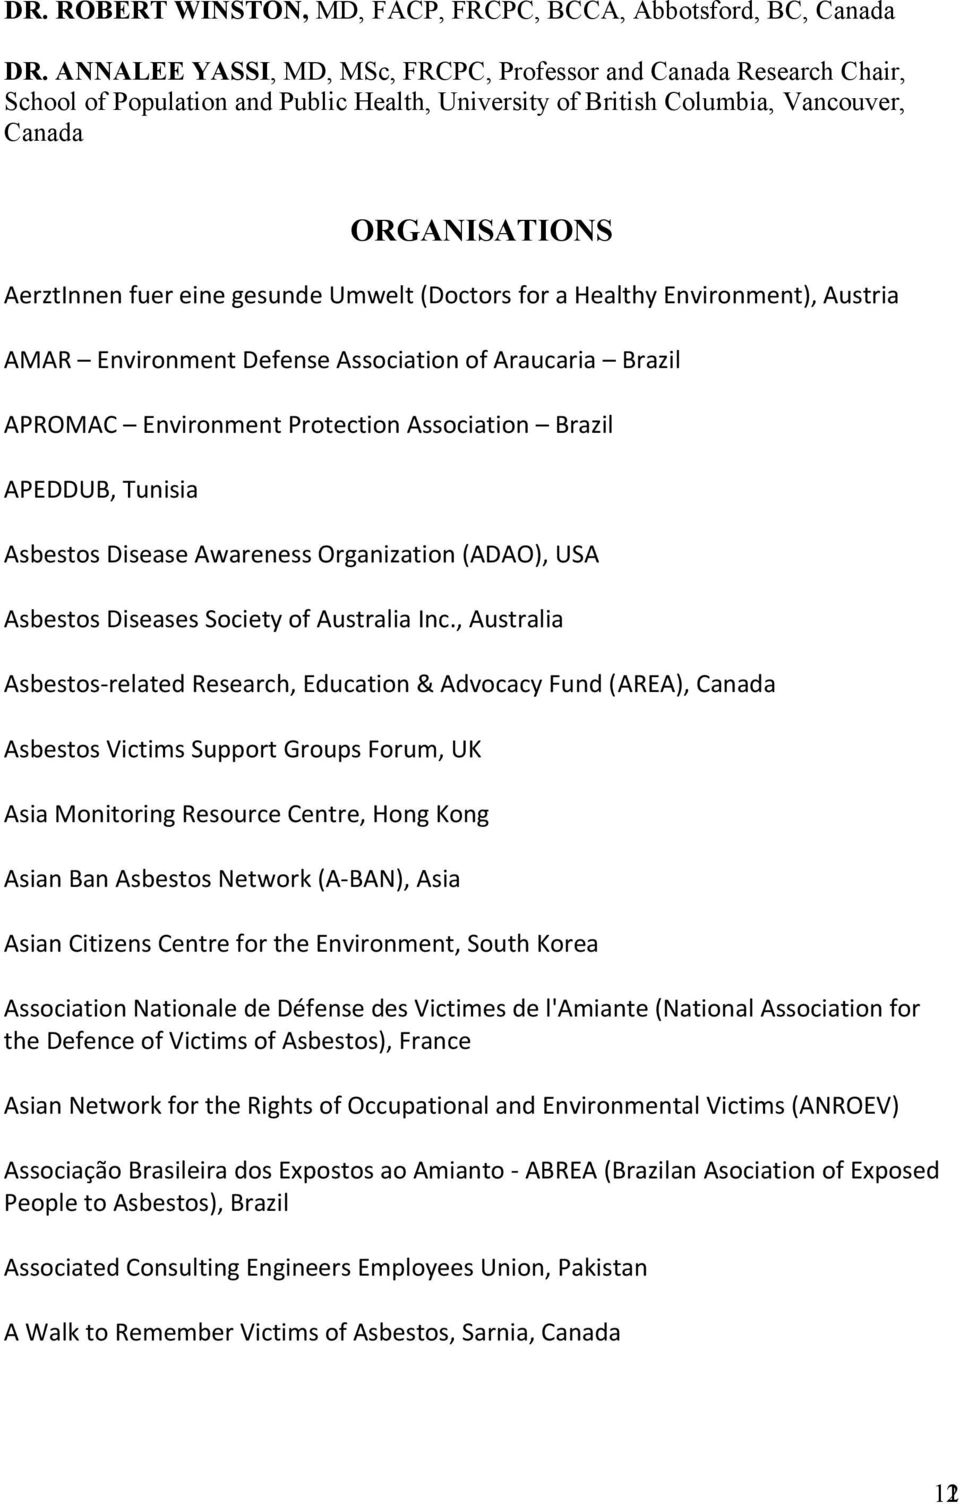 gesunde Umwelt (Doctors for a Healthy Environment), Austria AMAR Environment Defense Association of Araucaria Brazil APROMAC Environment Protection Association Brazil APEDDUB, Tunisia Asbestos